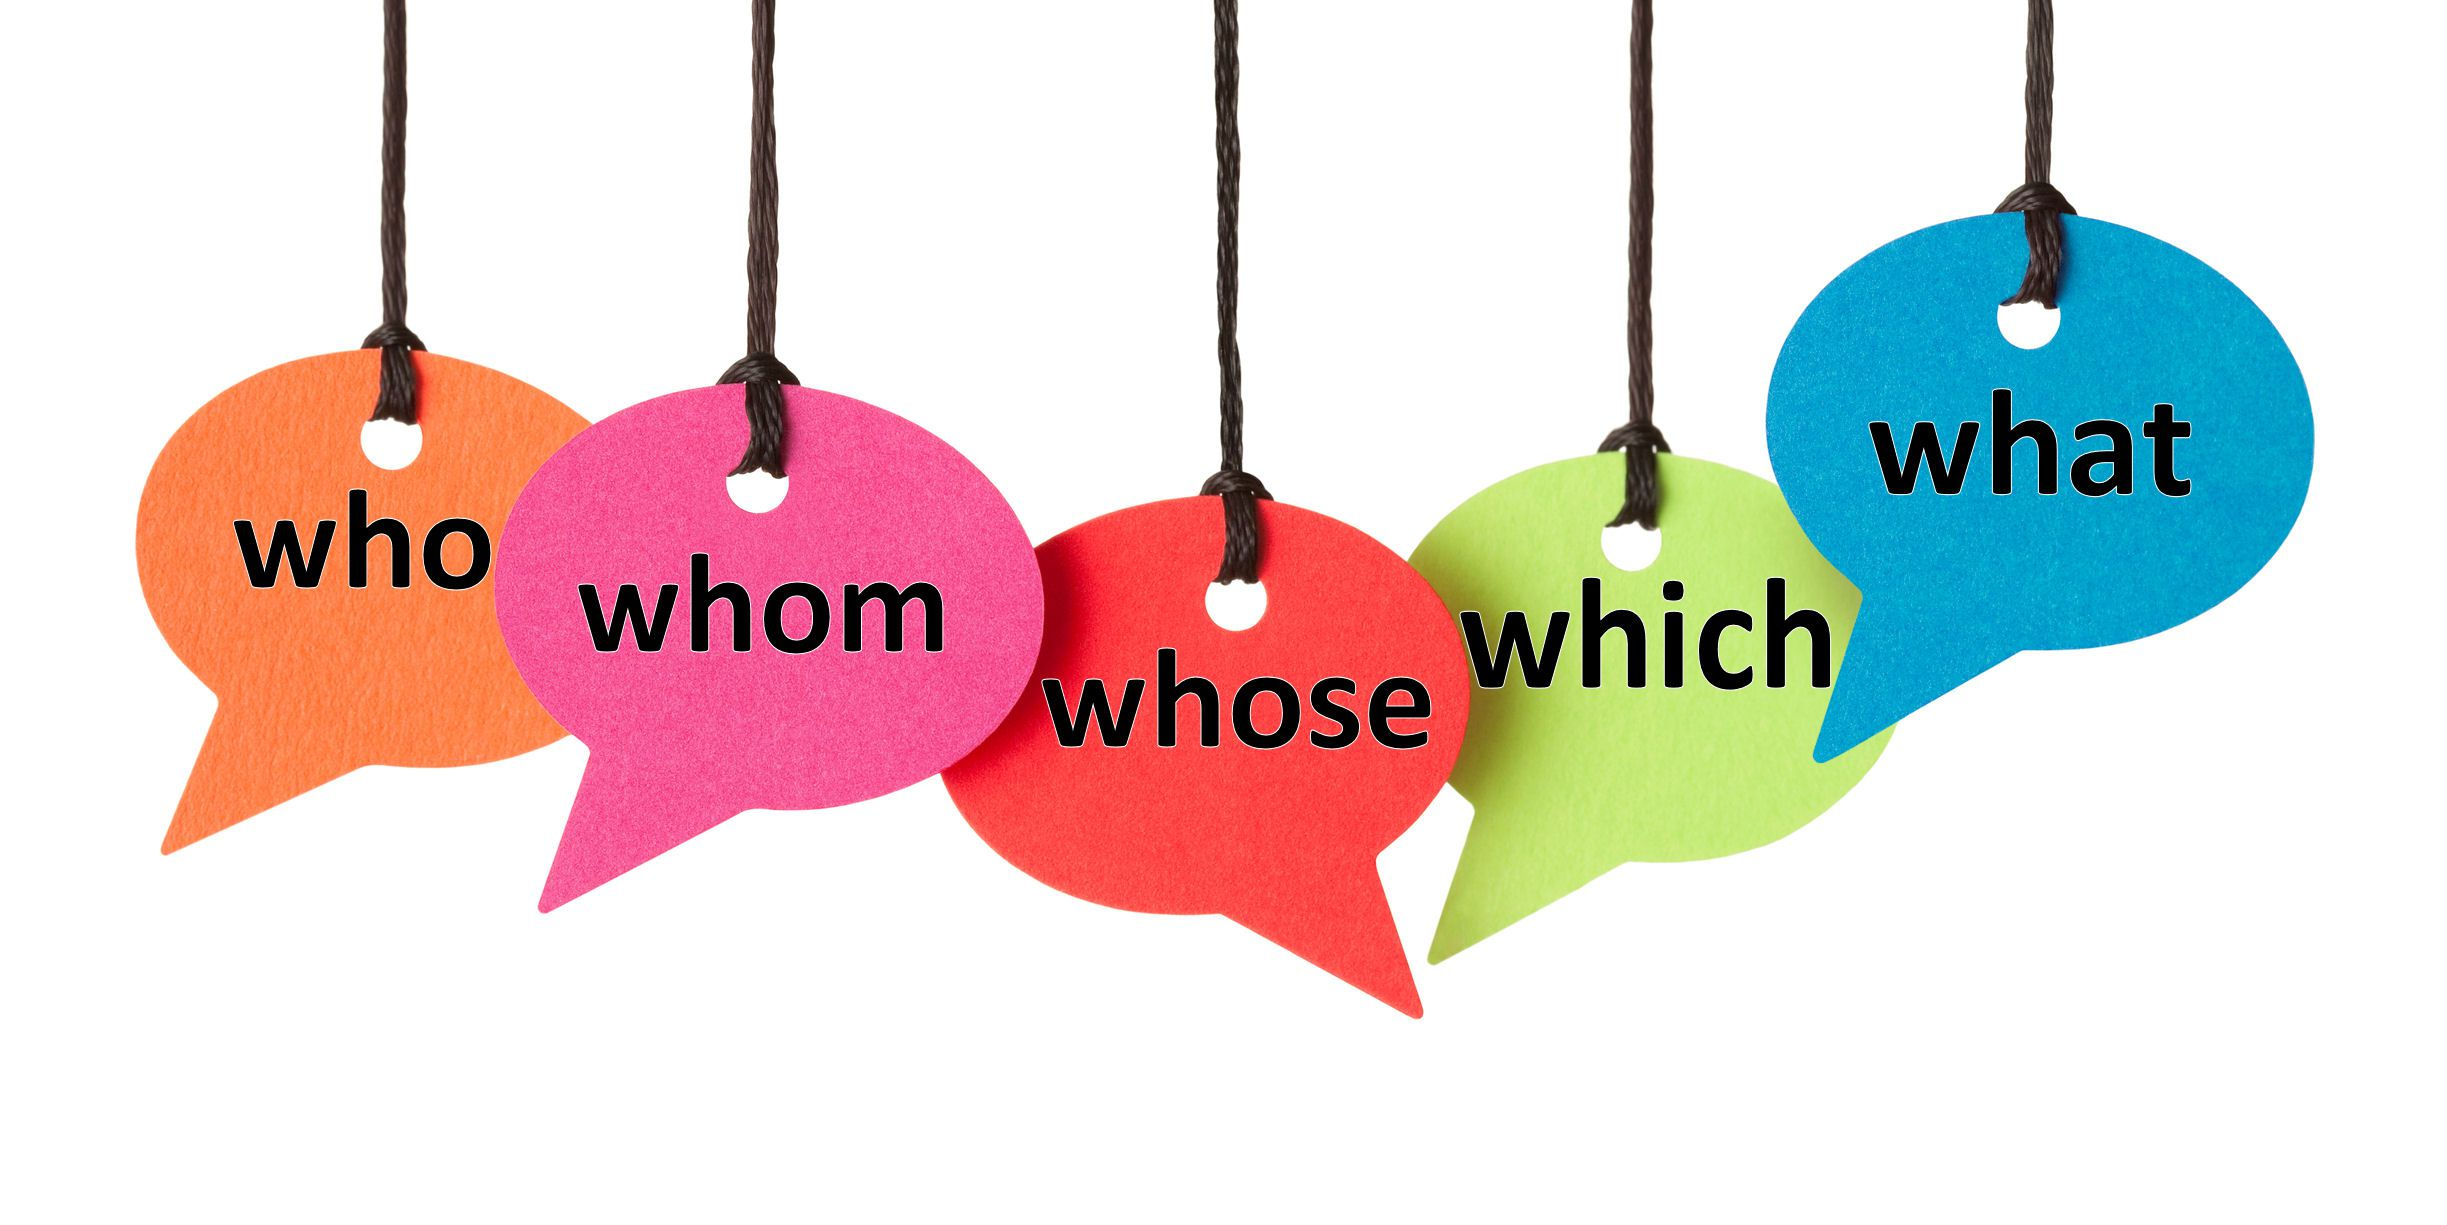 Definition And Examples Of Interrogative Pronouns